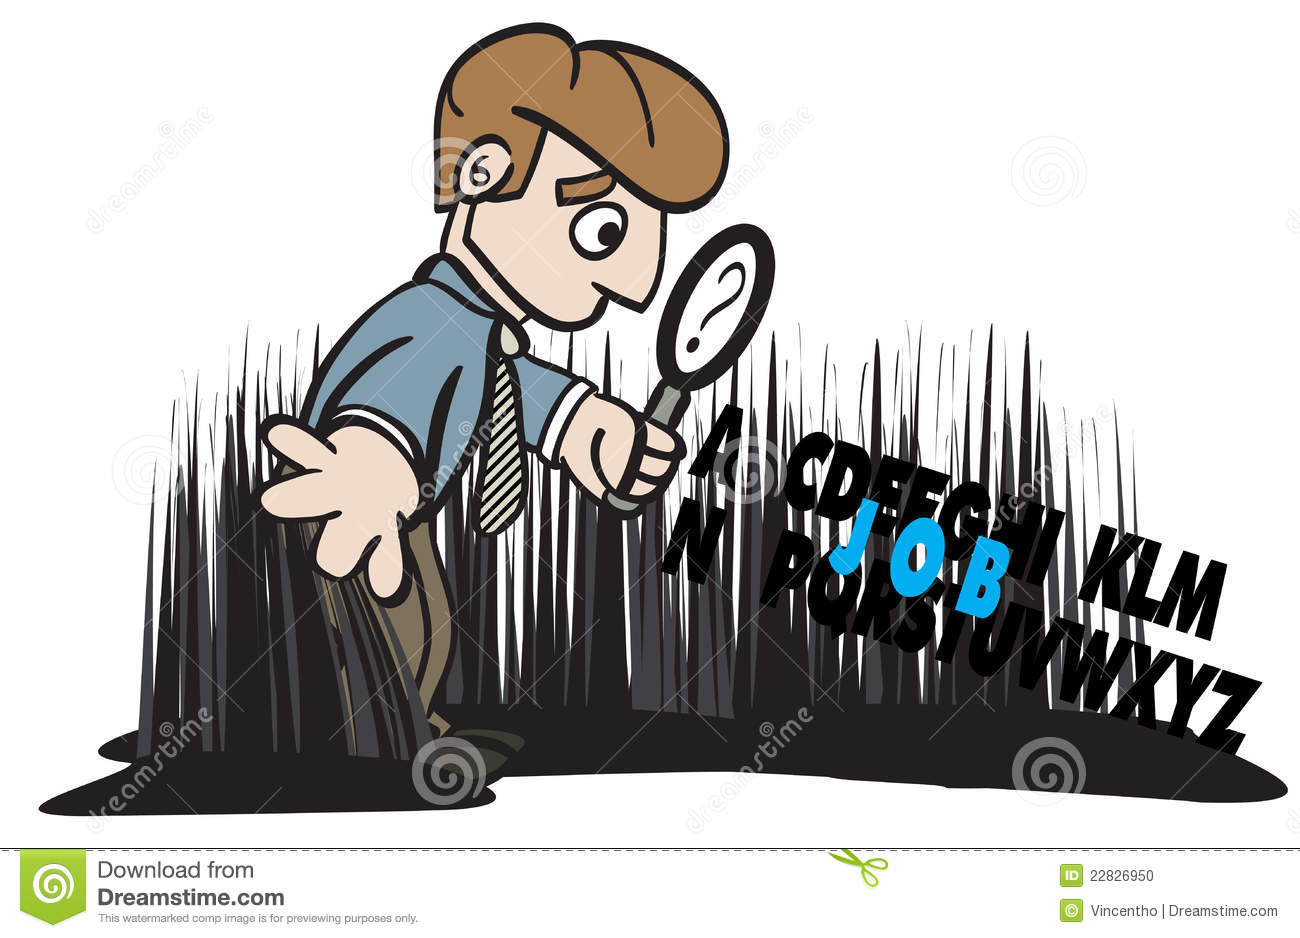 job seeker looking seeking for job illustration stock photo job seeker looking seeking for job illustration